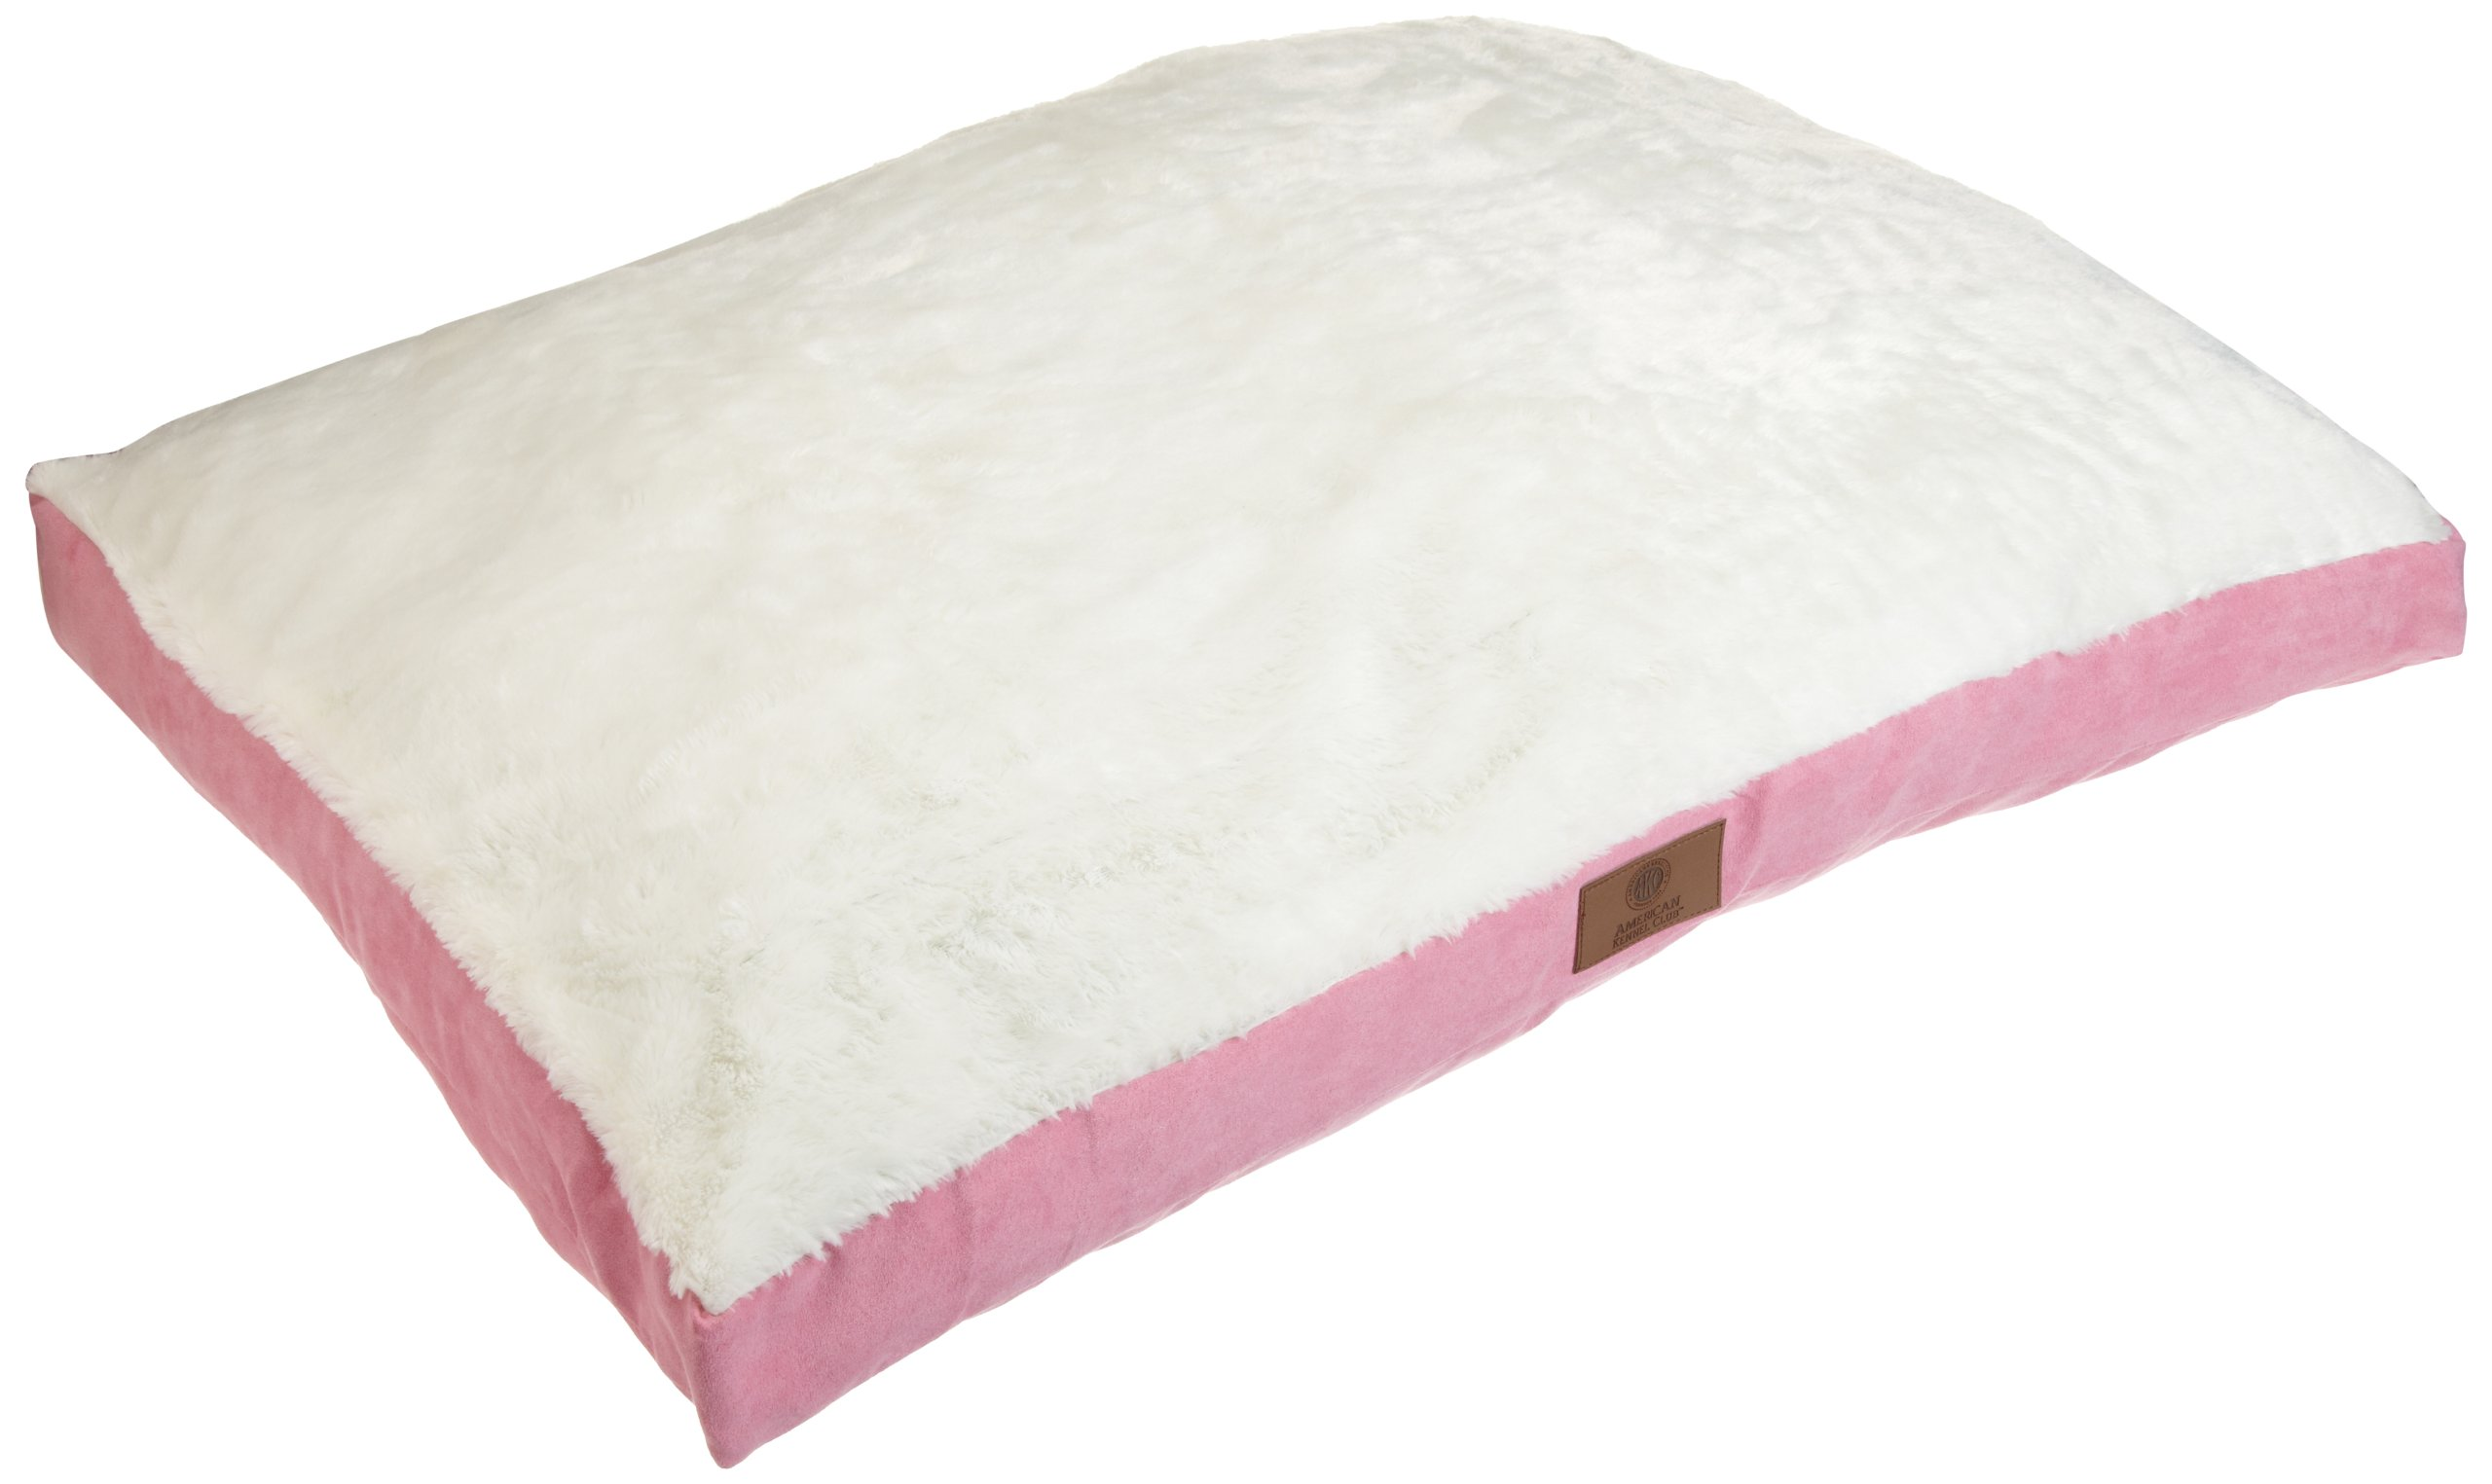 American Kennel Club Solid Suede Gusset Pet Bed with Fur Top, Pink